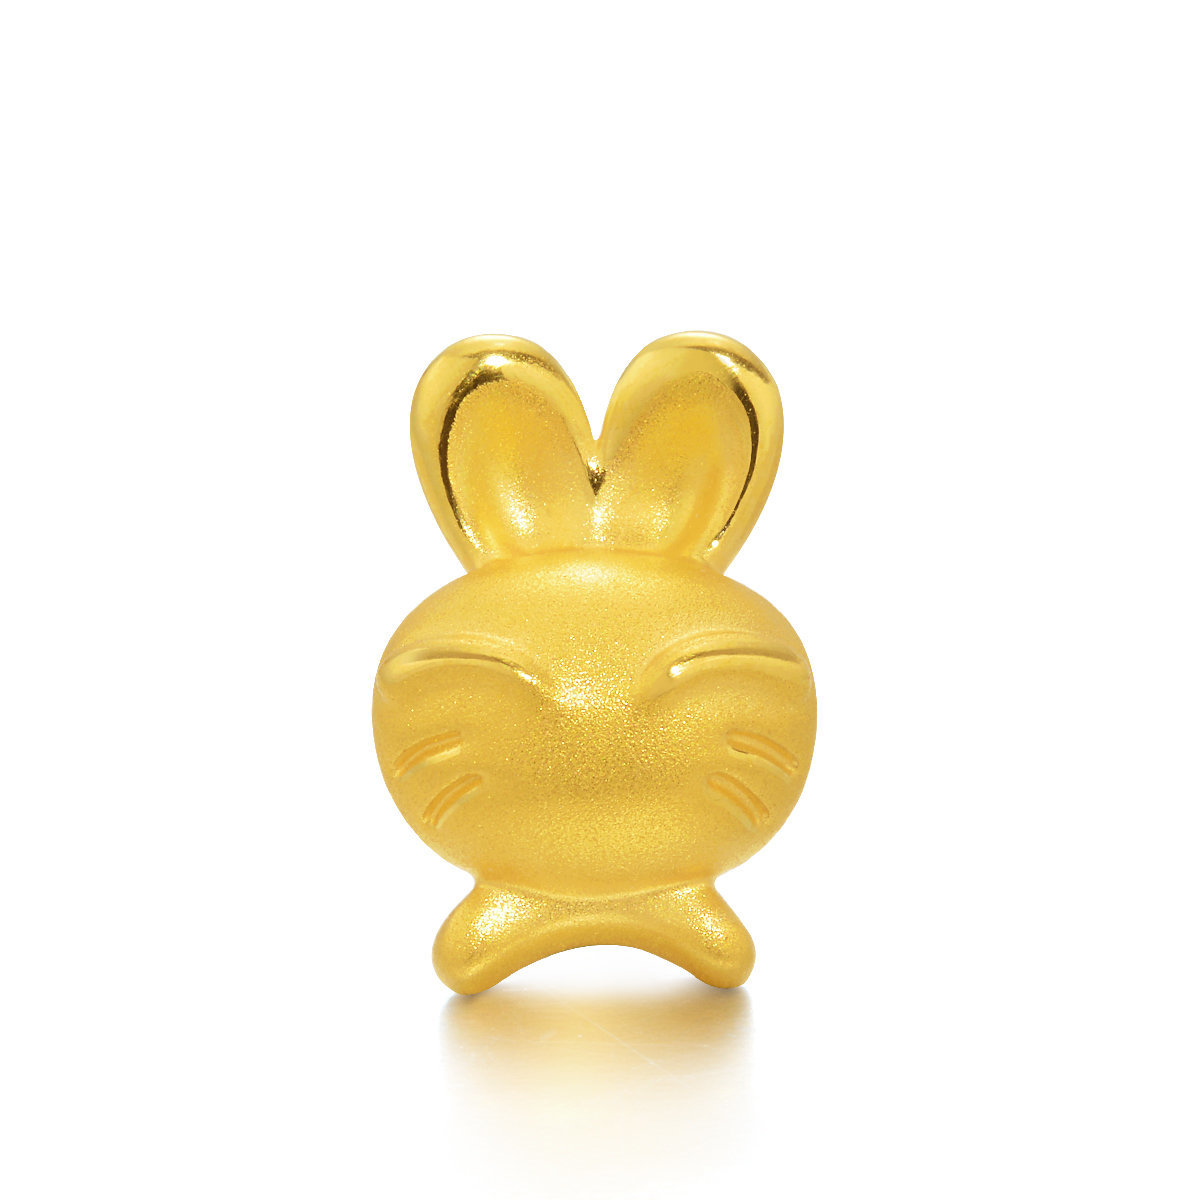 Charme 'Fate & Myth' 999 Gold Rabbit Charm (Bracelet not included)